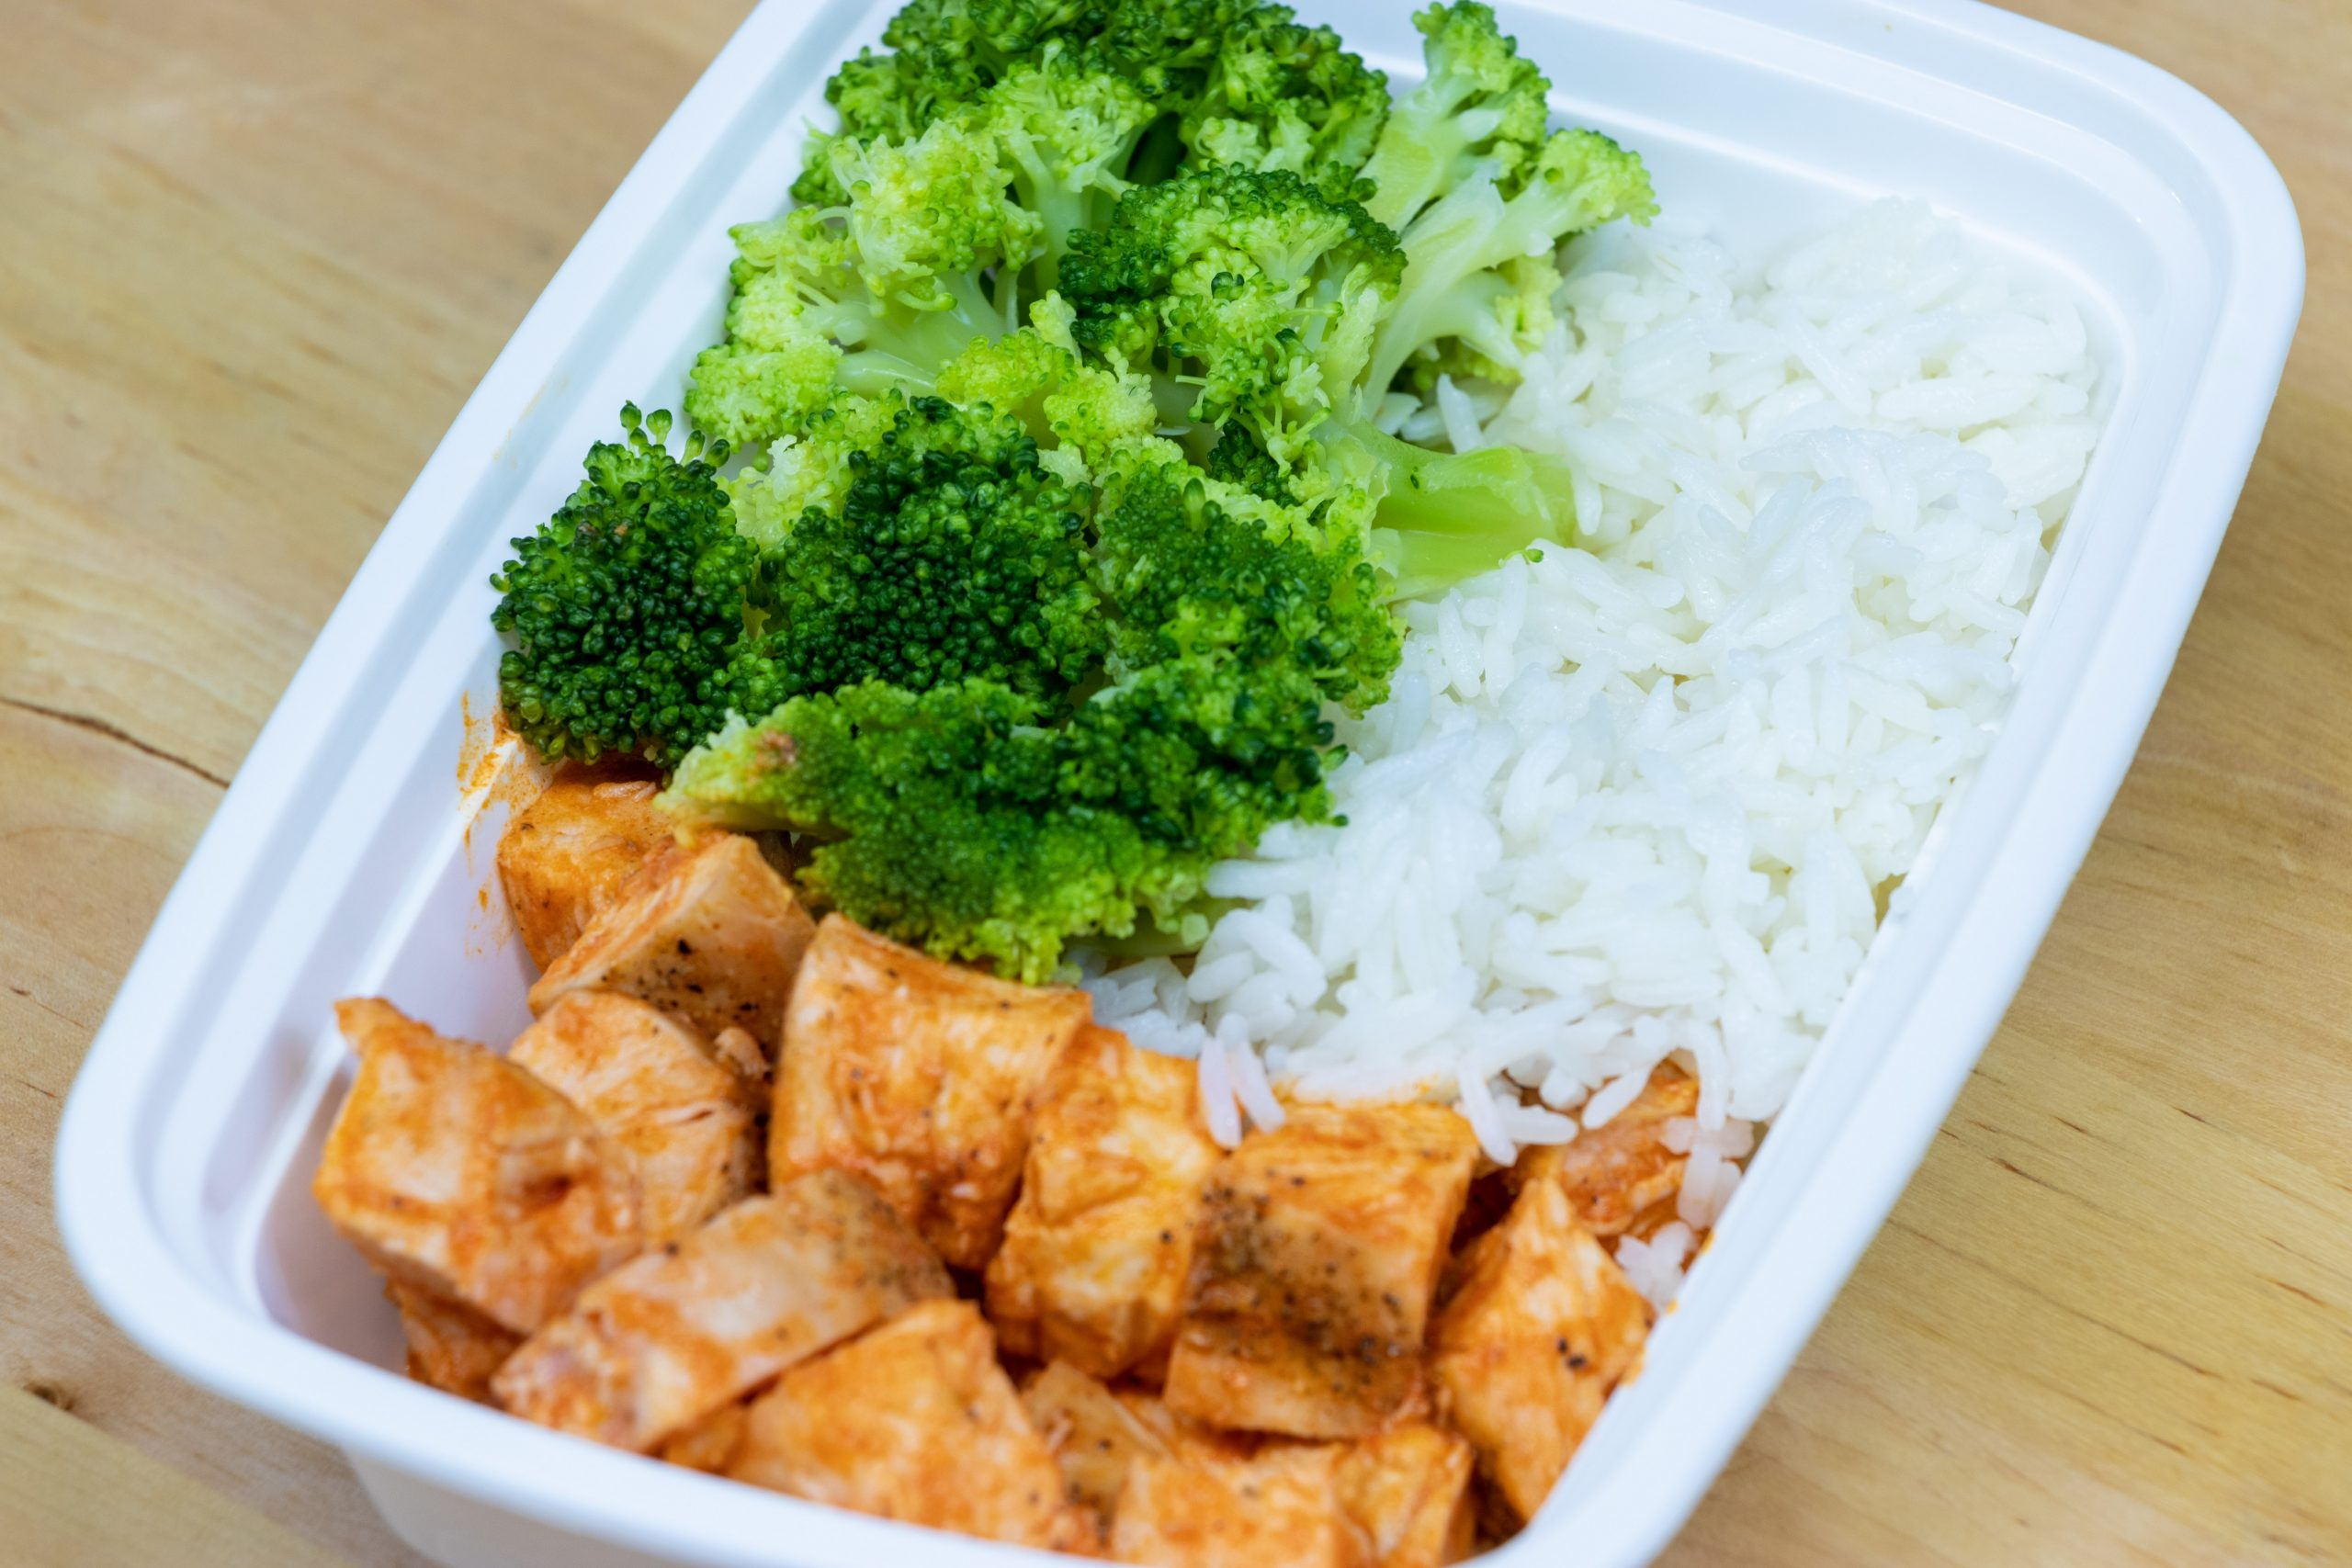 Buffalo chicken, rice and broccoli